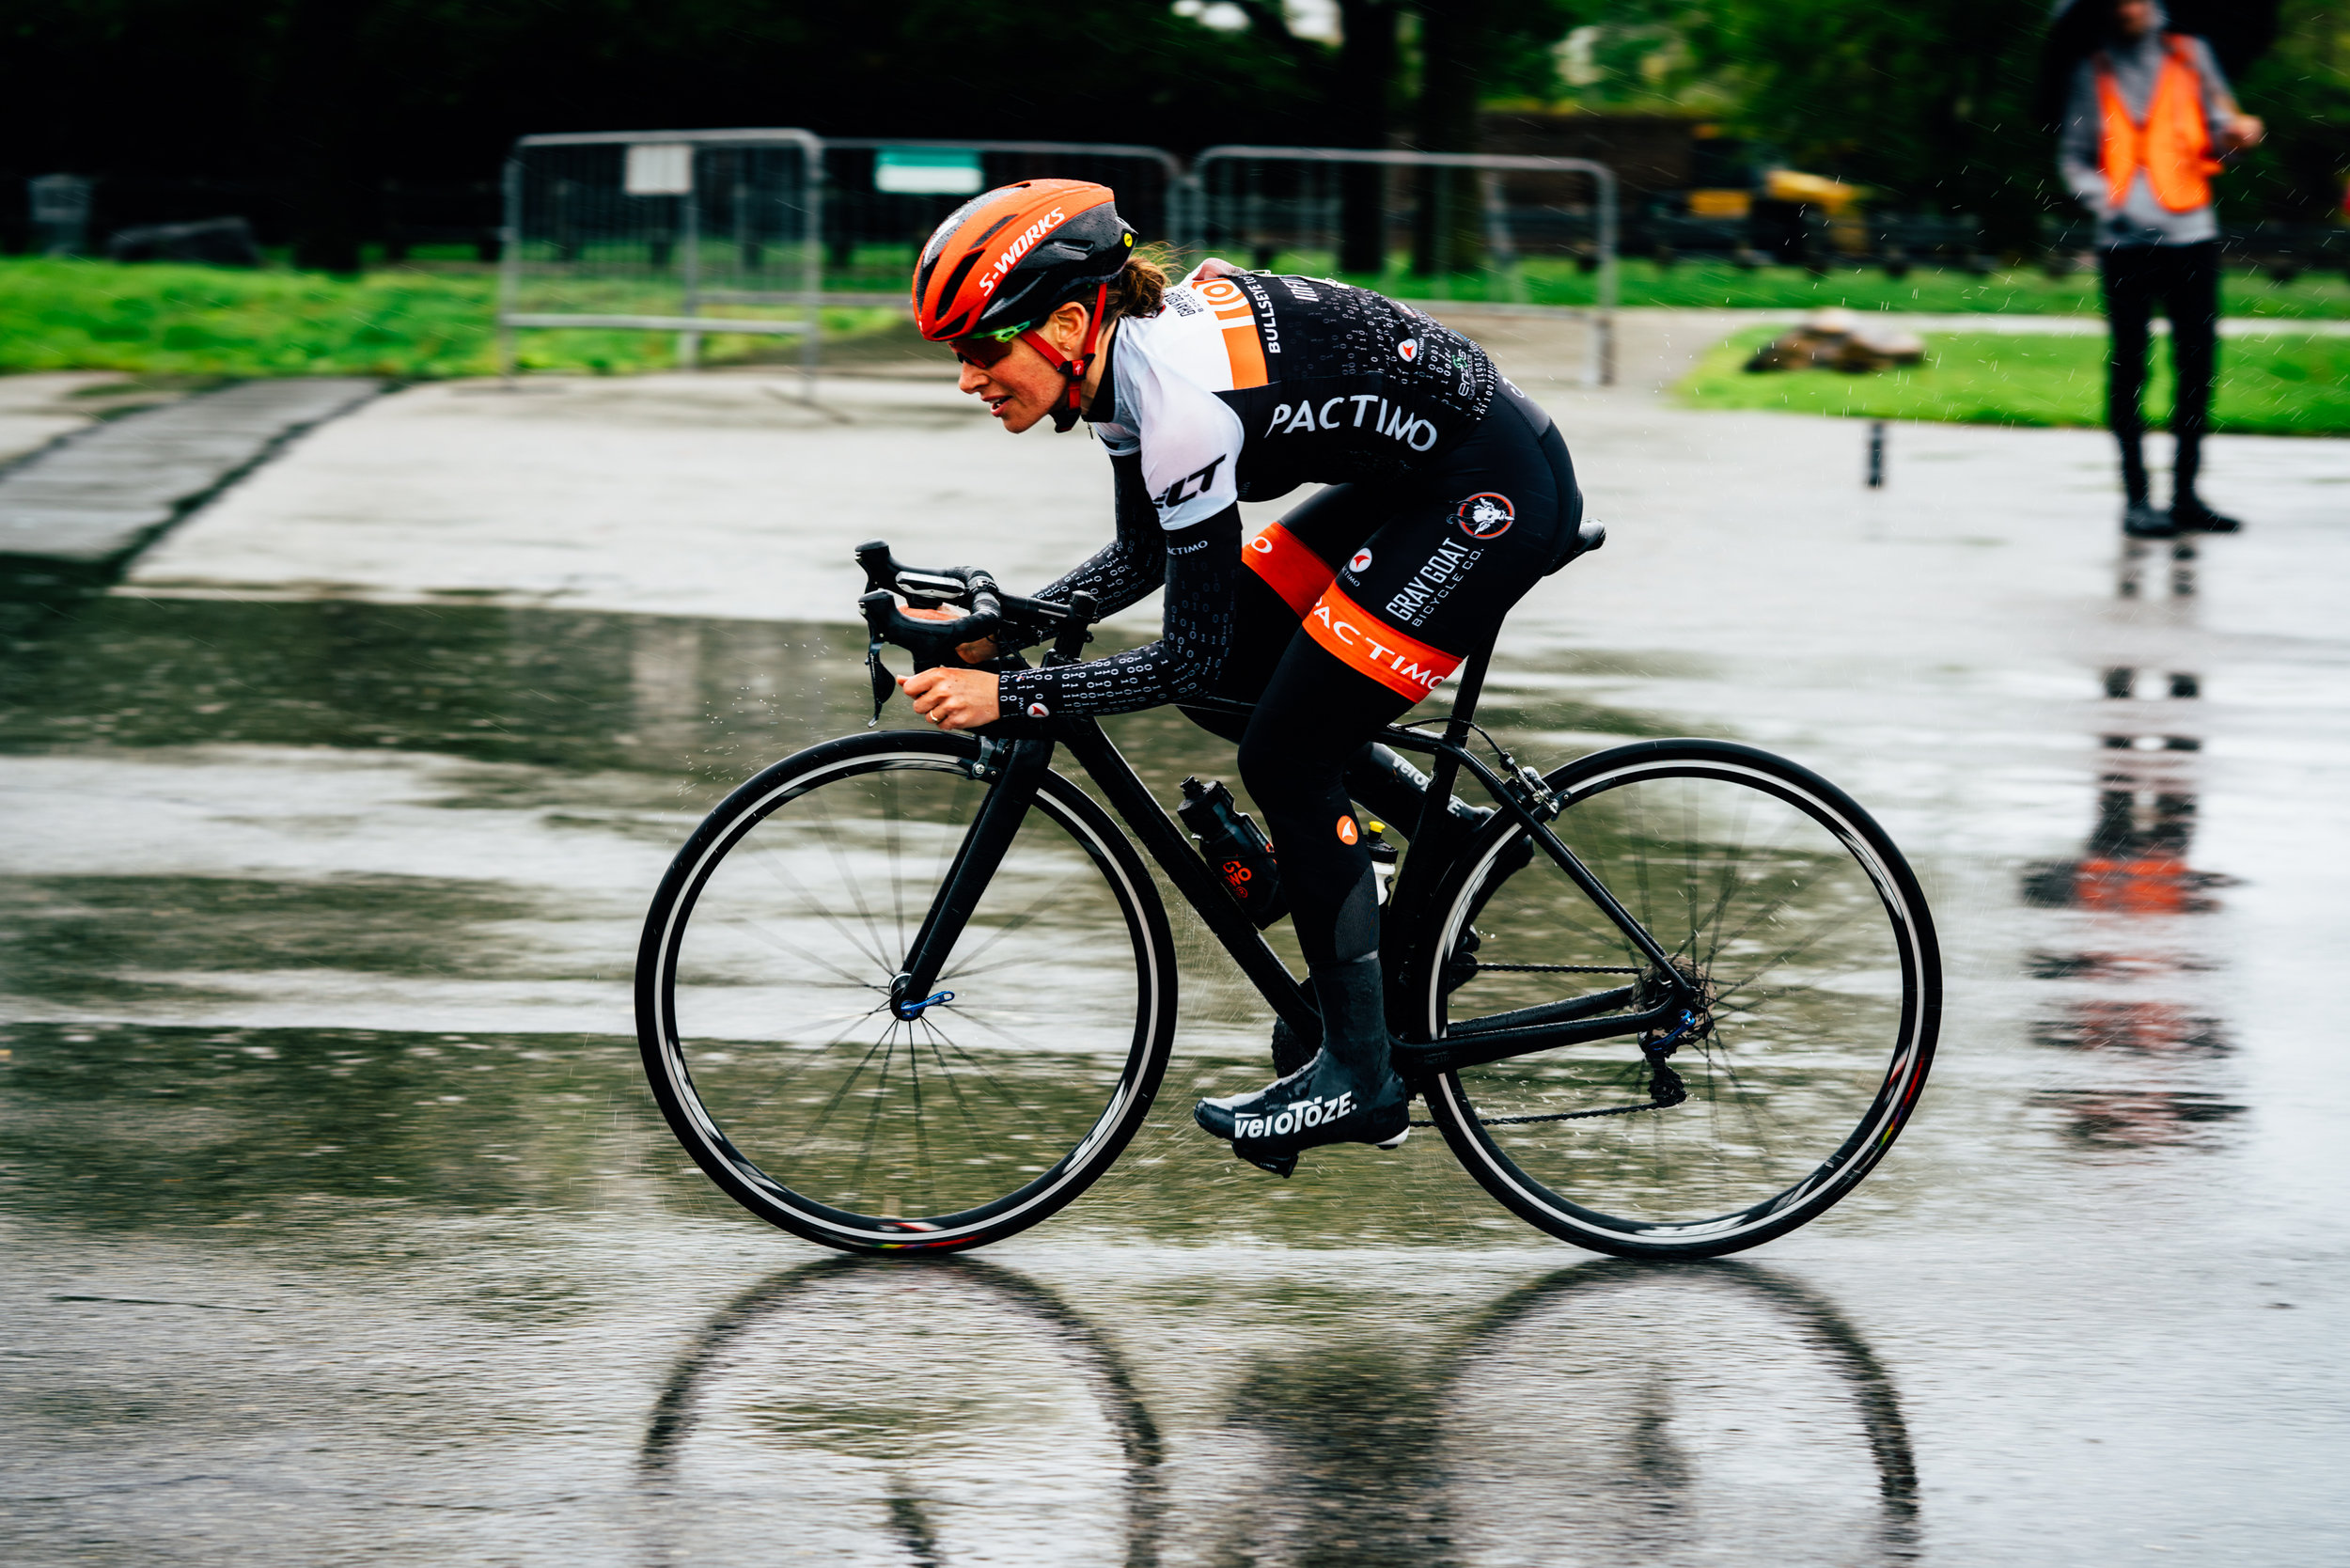 Photo Rhetoric - To Be Determined - Zach Koop Memorial Crit at Orchard Bearch-3030.jpg